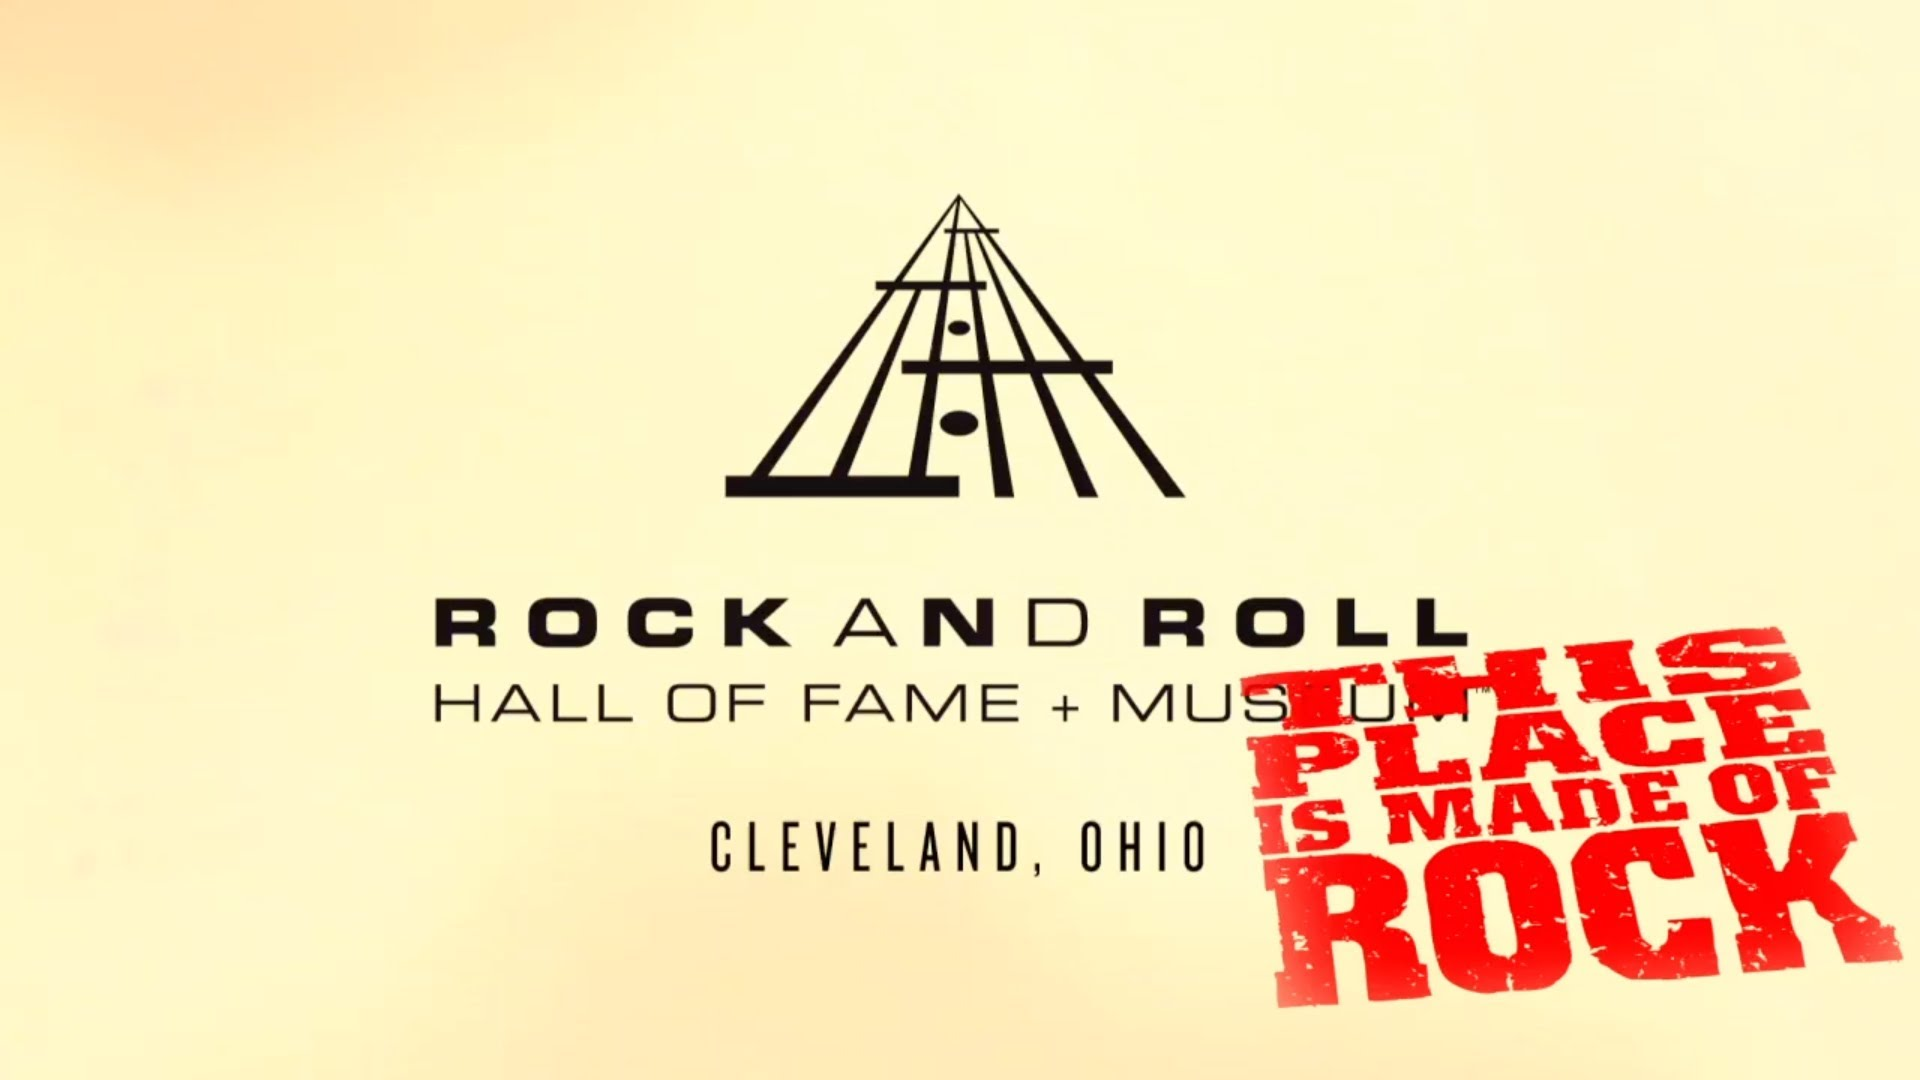 rockhall rock The Rock and Roll Hall of Fame Induction Ceremony: Creation, Catharsis, and Canonization